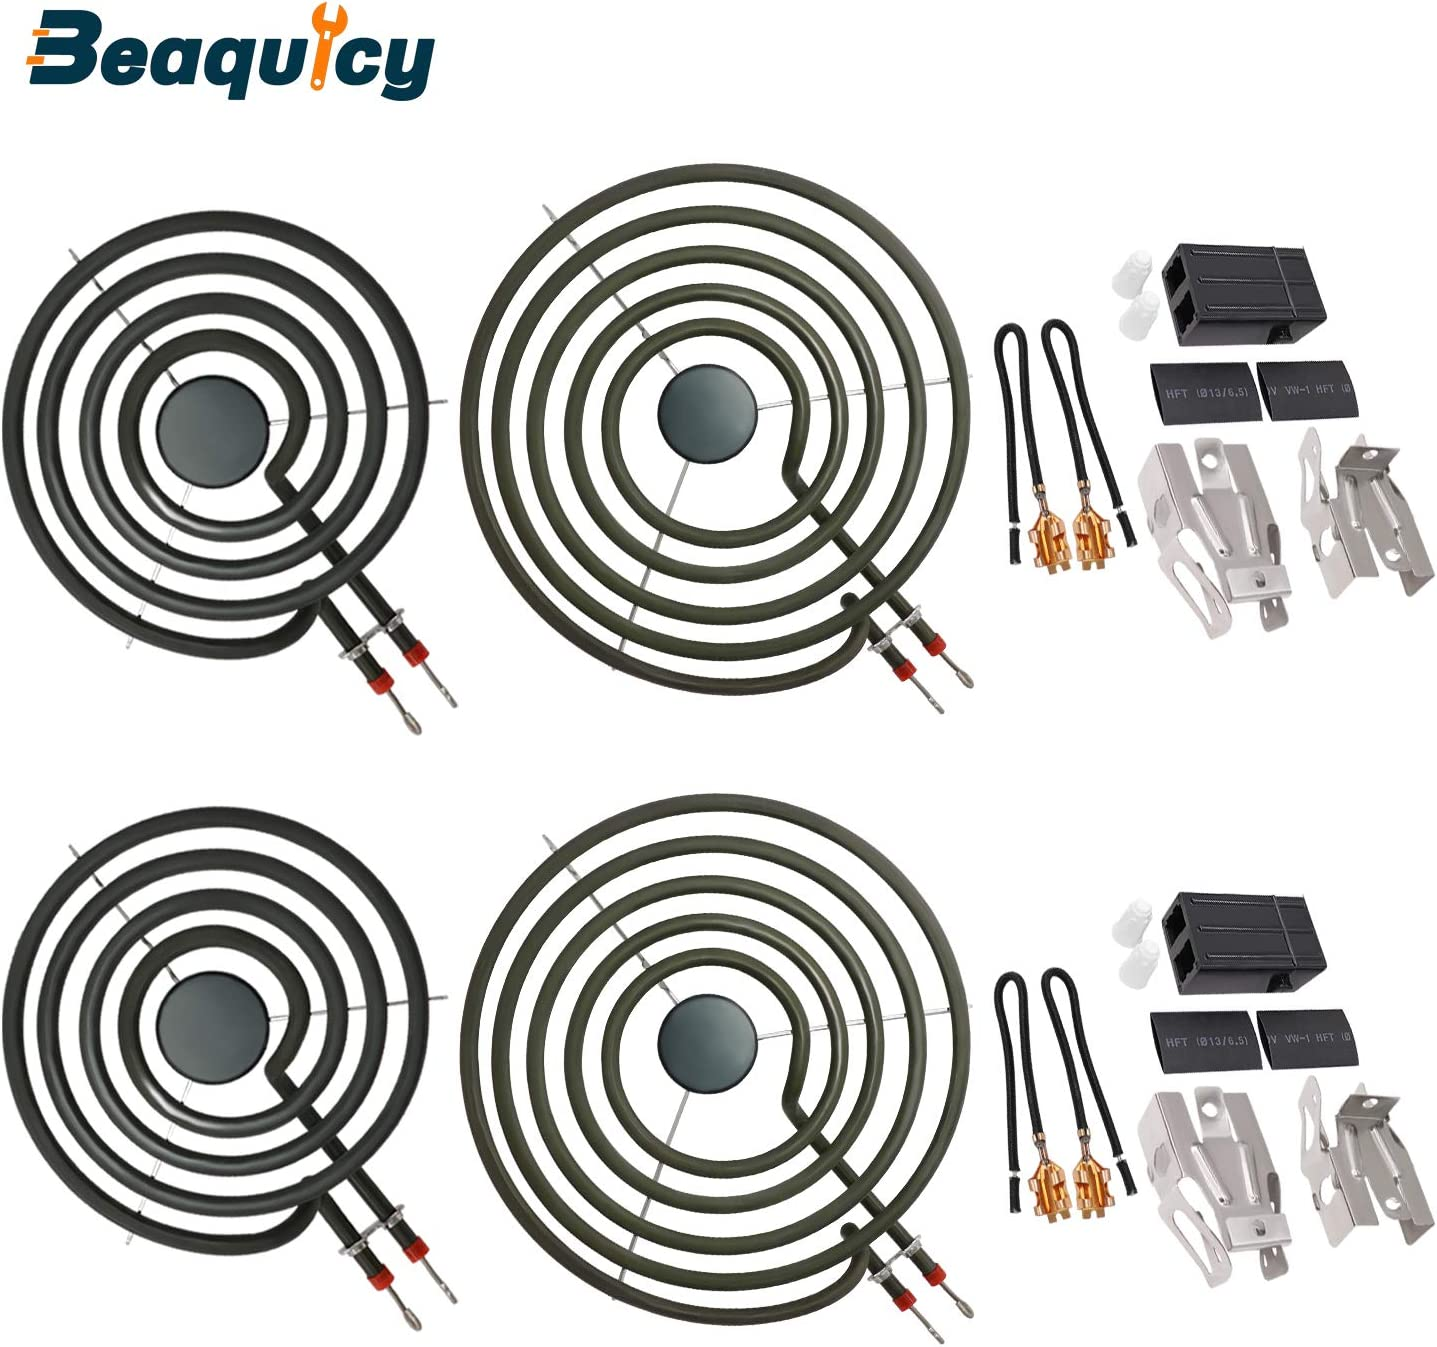 "MP22YA Electric Range Burner Element Unit Set(2 pcs MP15YA 6"" & 2 pcs MP21YA 8"") with 2 Pack 330031 Surface Element Receptacle Kit by Beaquicy - Replacement for Kenmore Whirlpool Ranges Stoves"